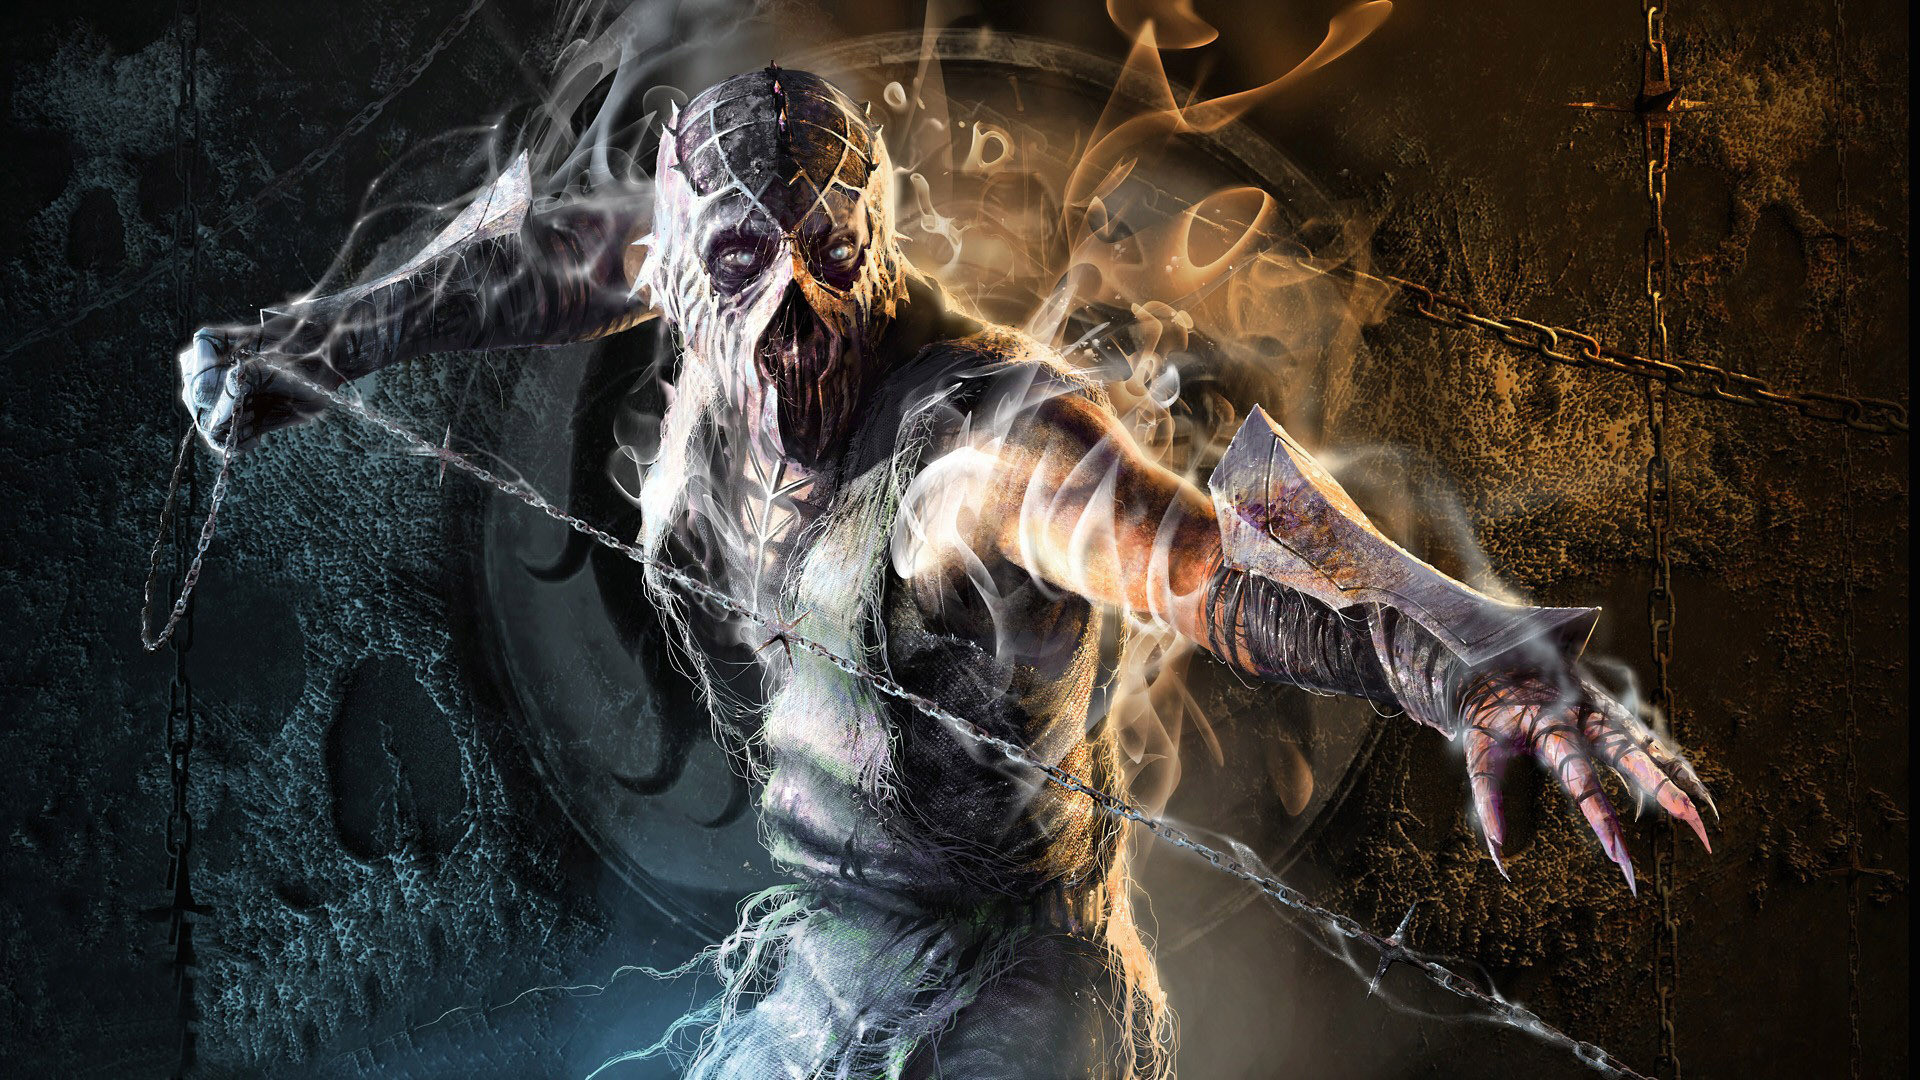 Scorpion Mortal Kombat Wallpaper 63 Pictures